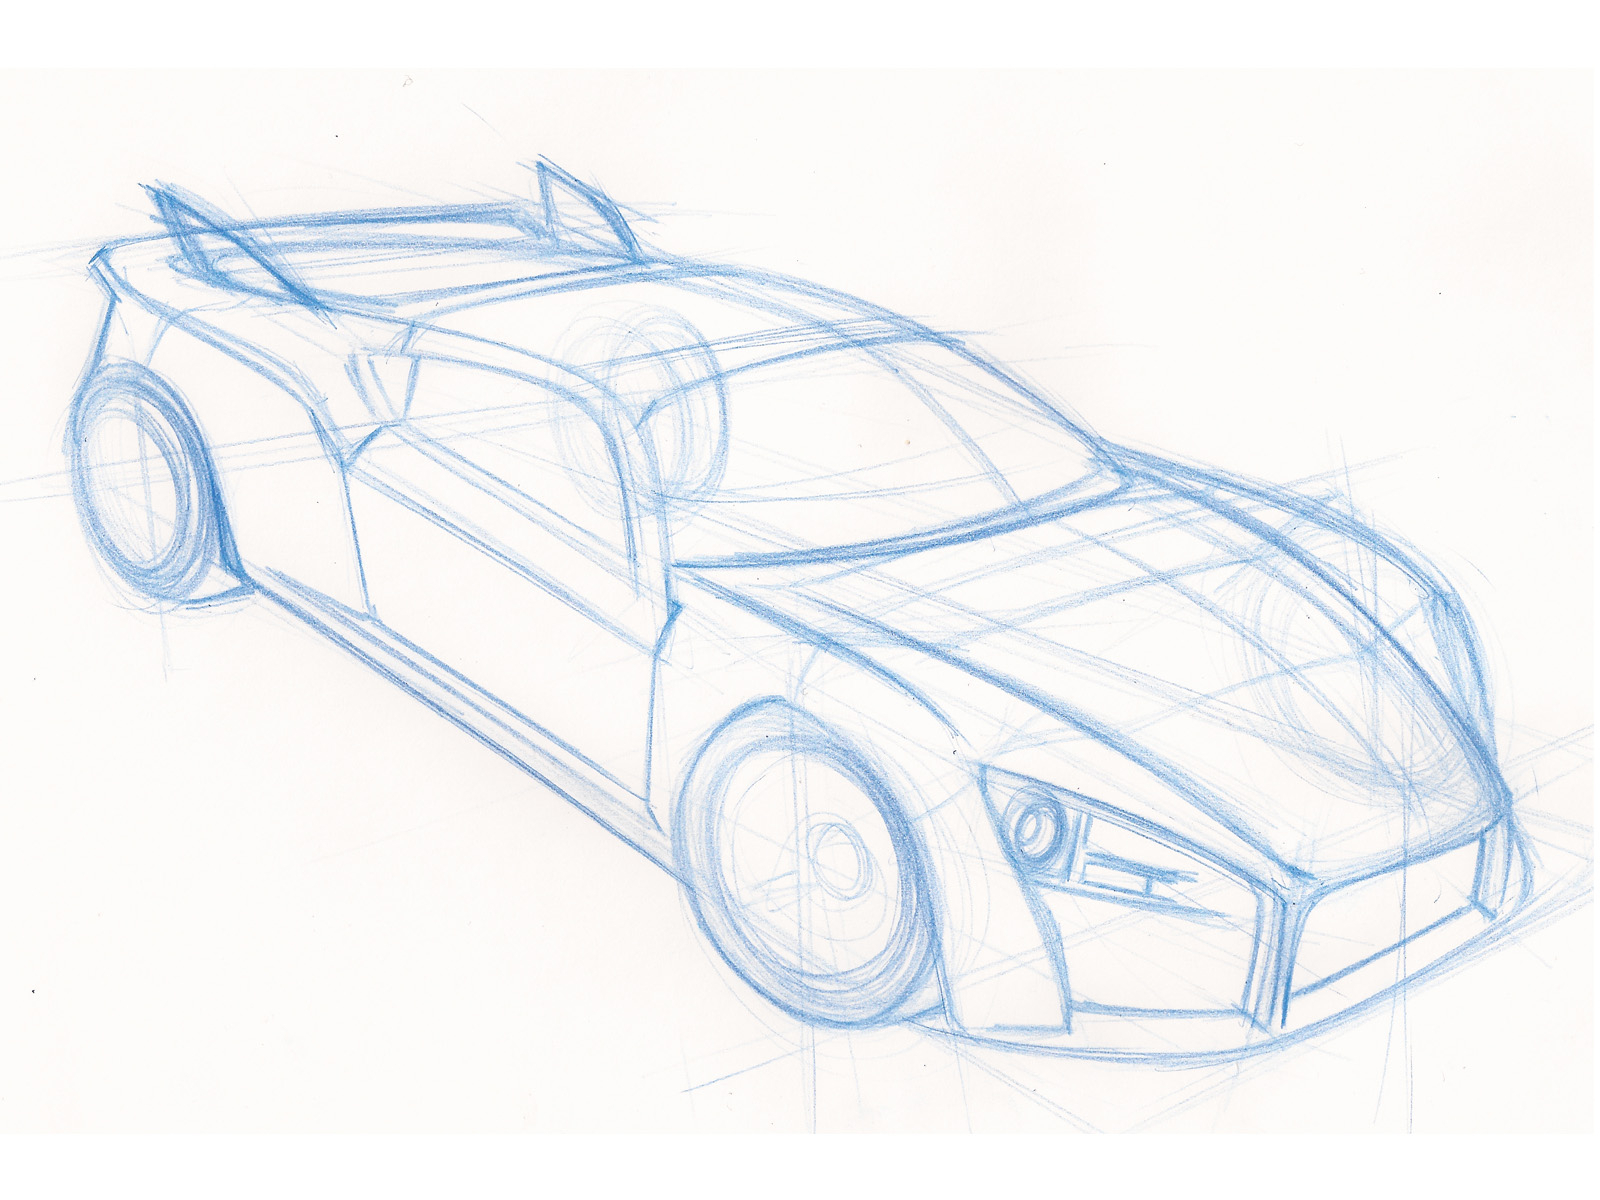 1600x1200 Pencil Sketch Of Cars Cool Car Drawings In Pencil Wallpaper Iphone